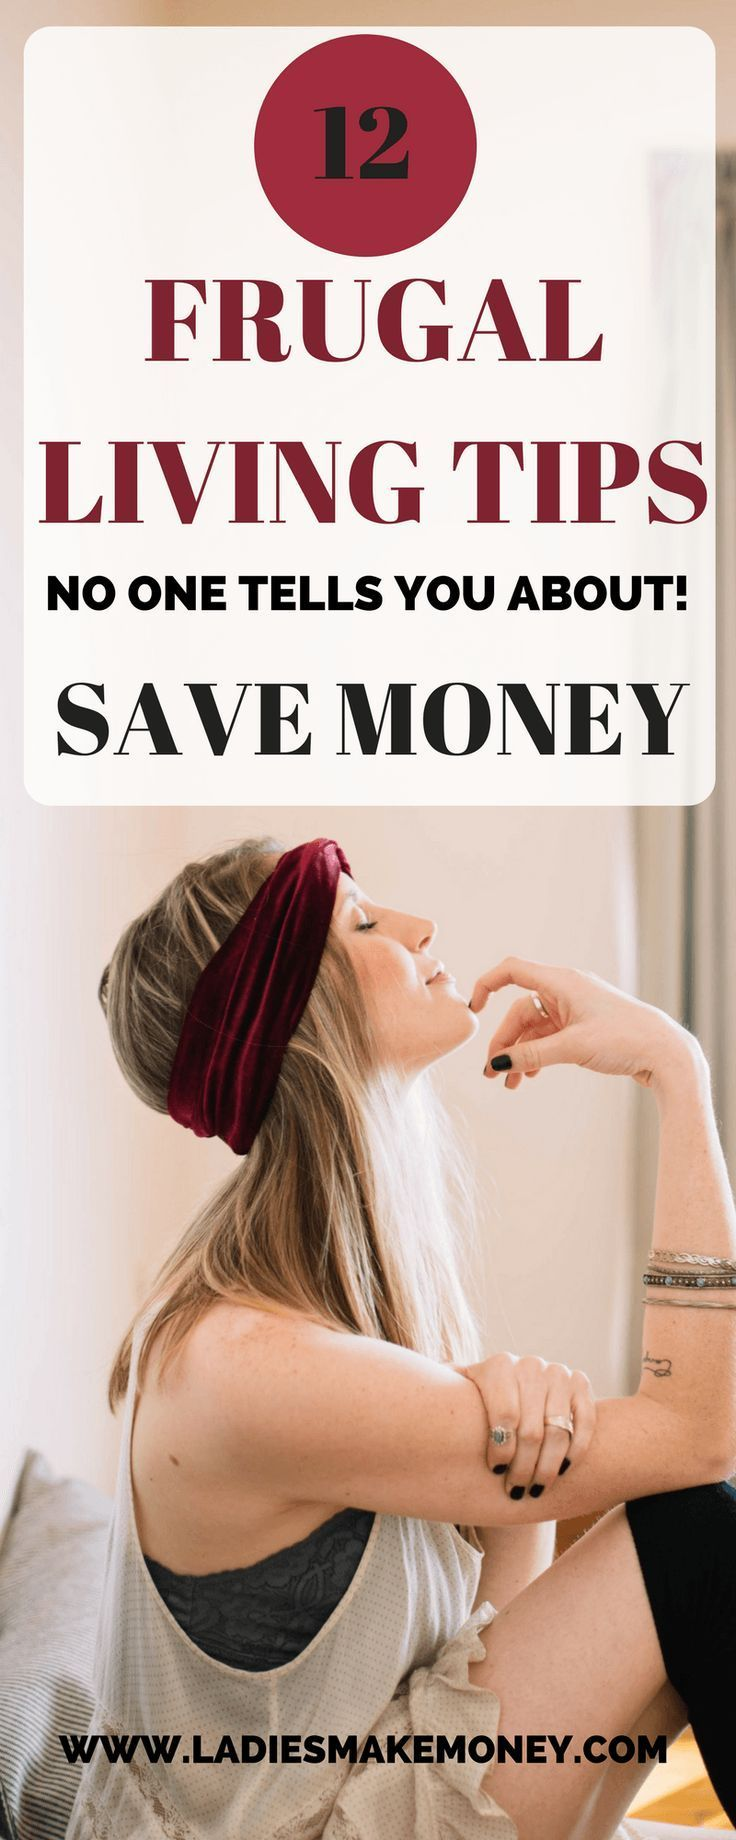 Tips that the frugal don't share about saving money...